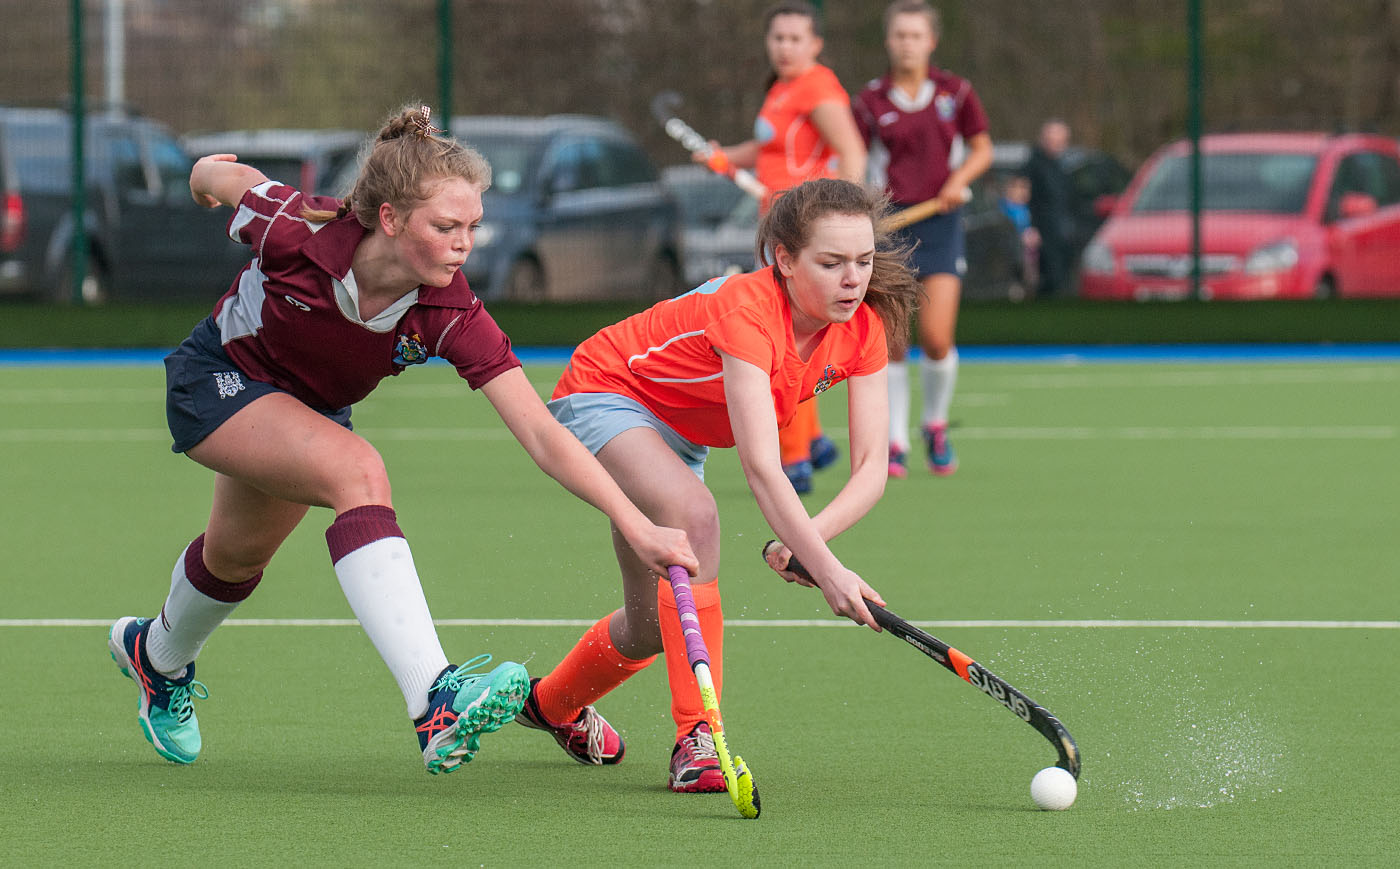 Scottish U16's hockey cup finals 2017 - girls striving for the ball